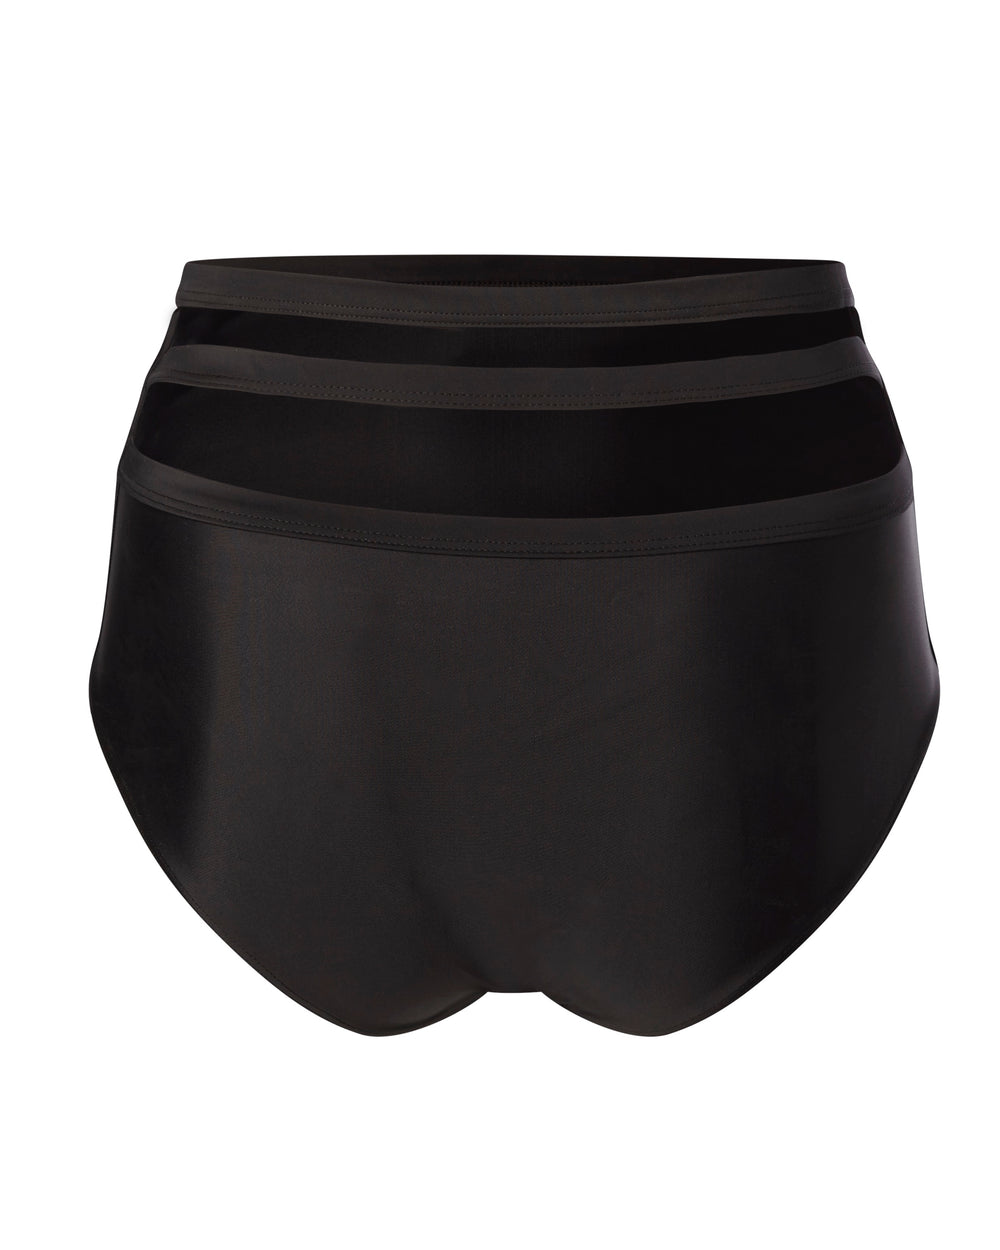 Bouloux II Bottom